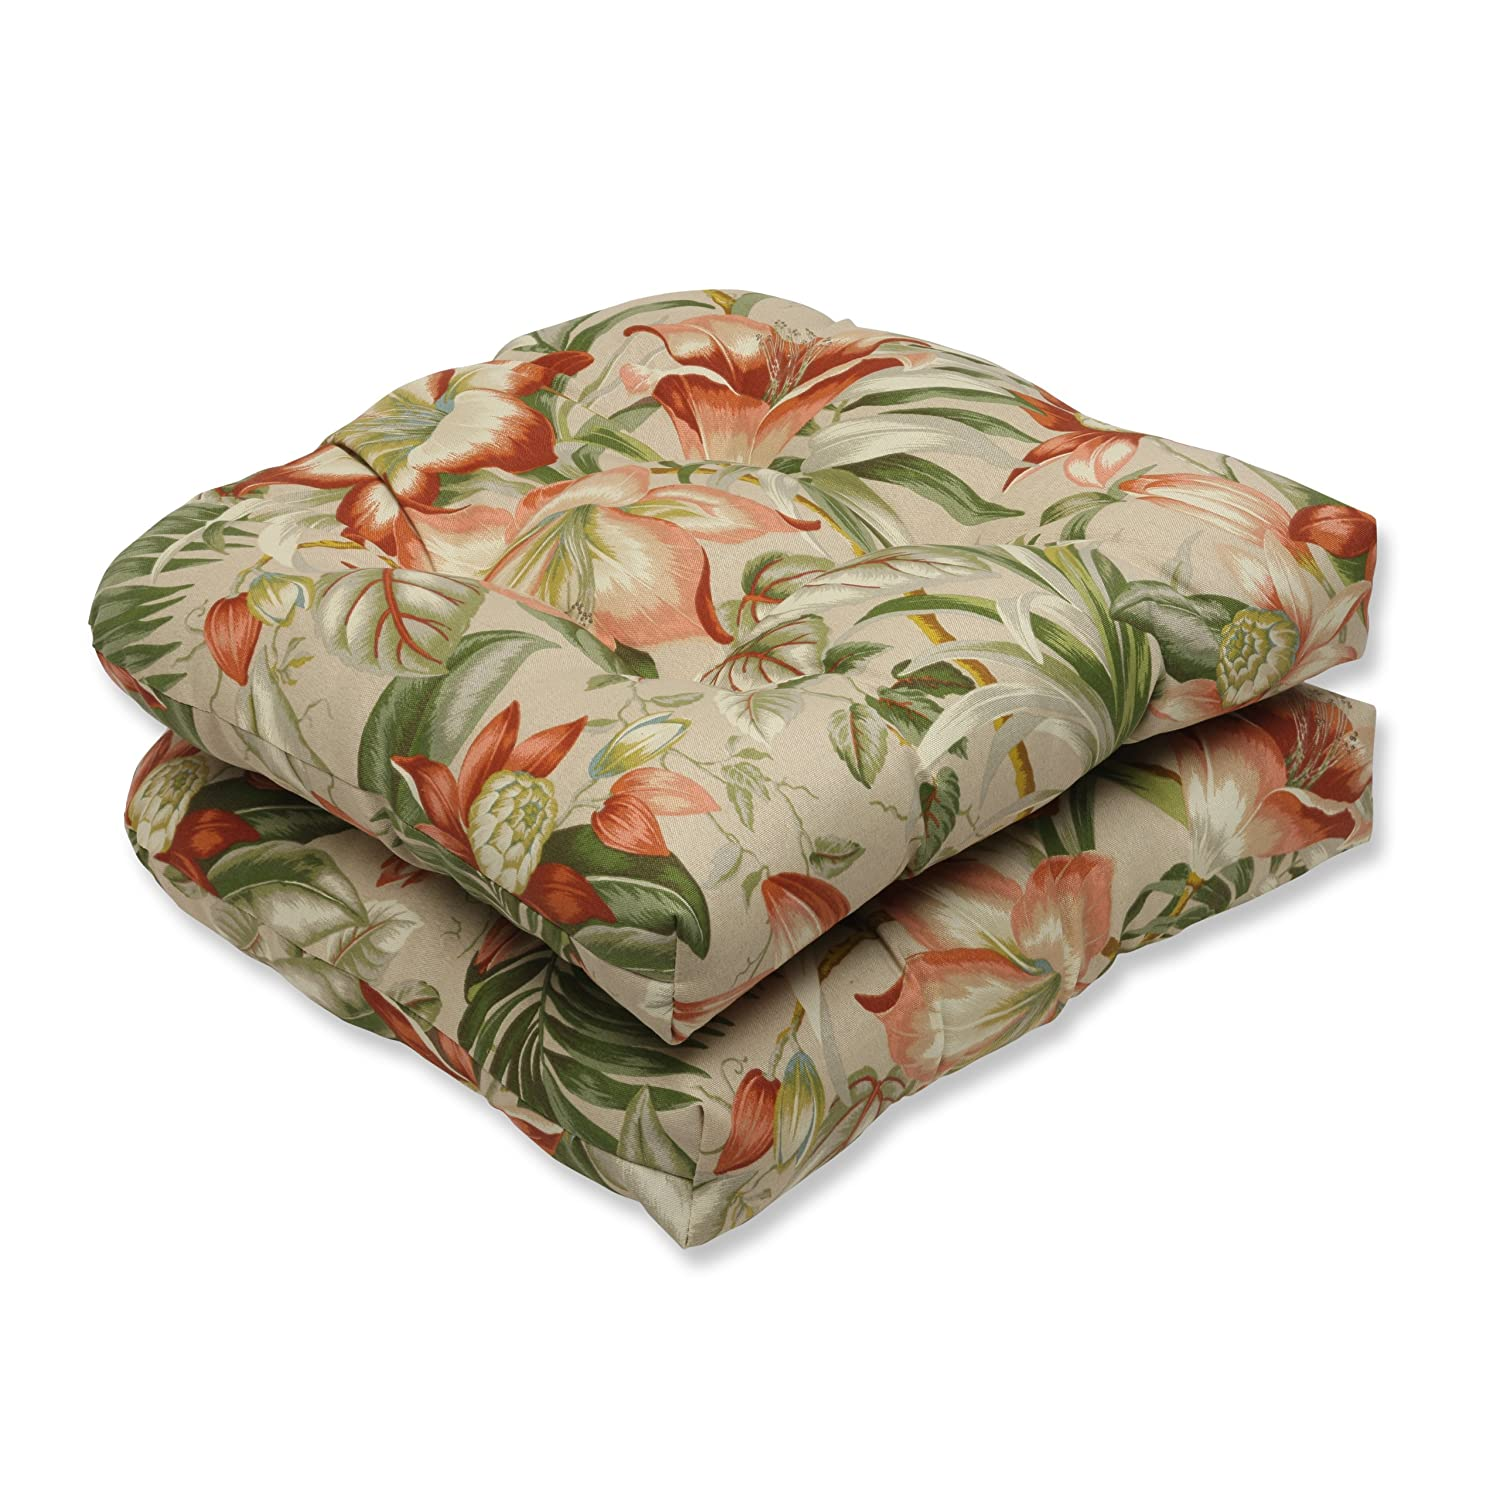 Pillow Perfect Outdoor Botanical Glow Tiger Wicker Seat Cushion, Set of 2